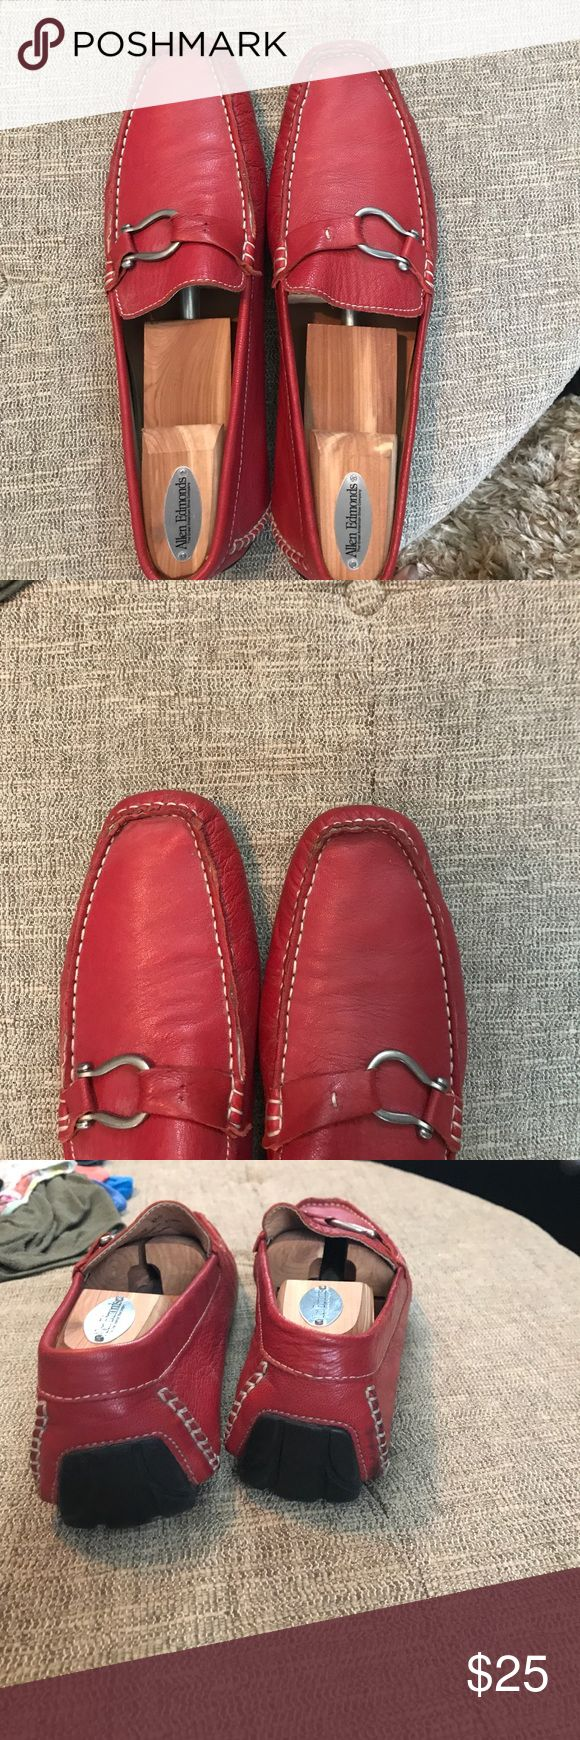 Bacco Bucci Dio genuine red leather driver These are hot! They have seen some love but still in good condition! They retail for $60-$120 Bacco Bucci Shoes Loafers & Slip-Ons